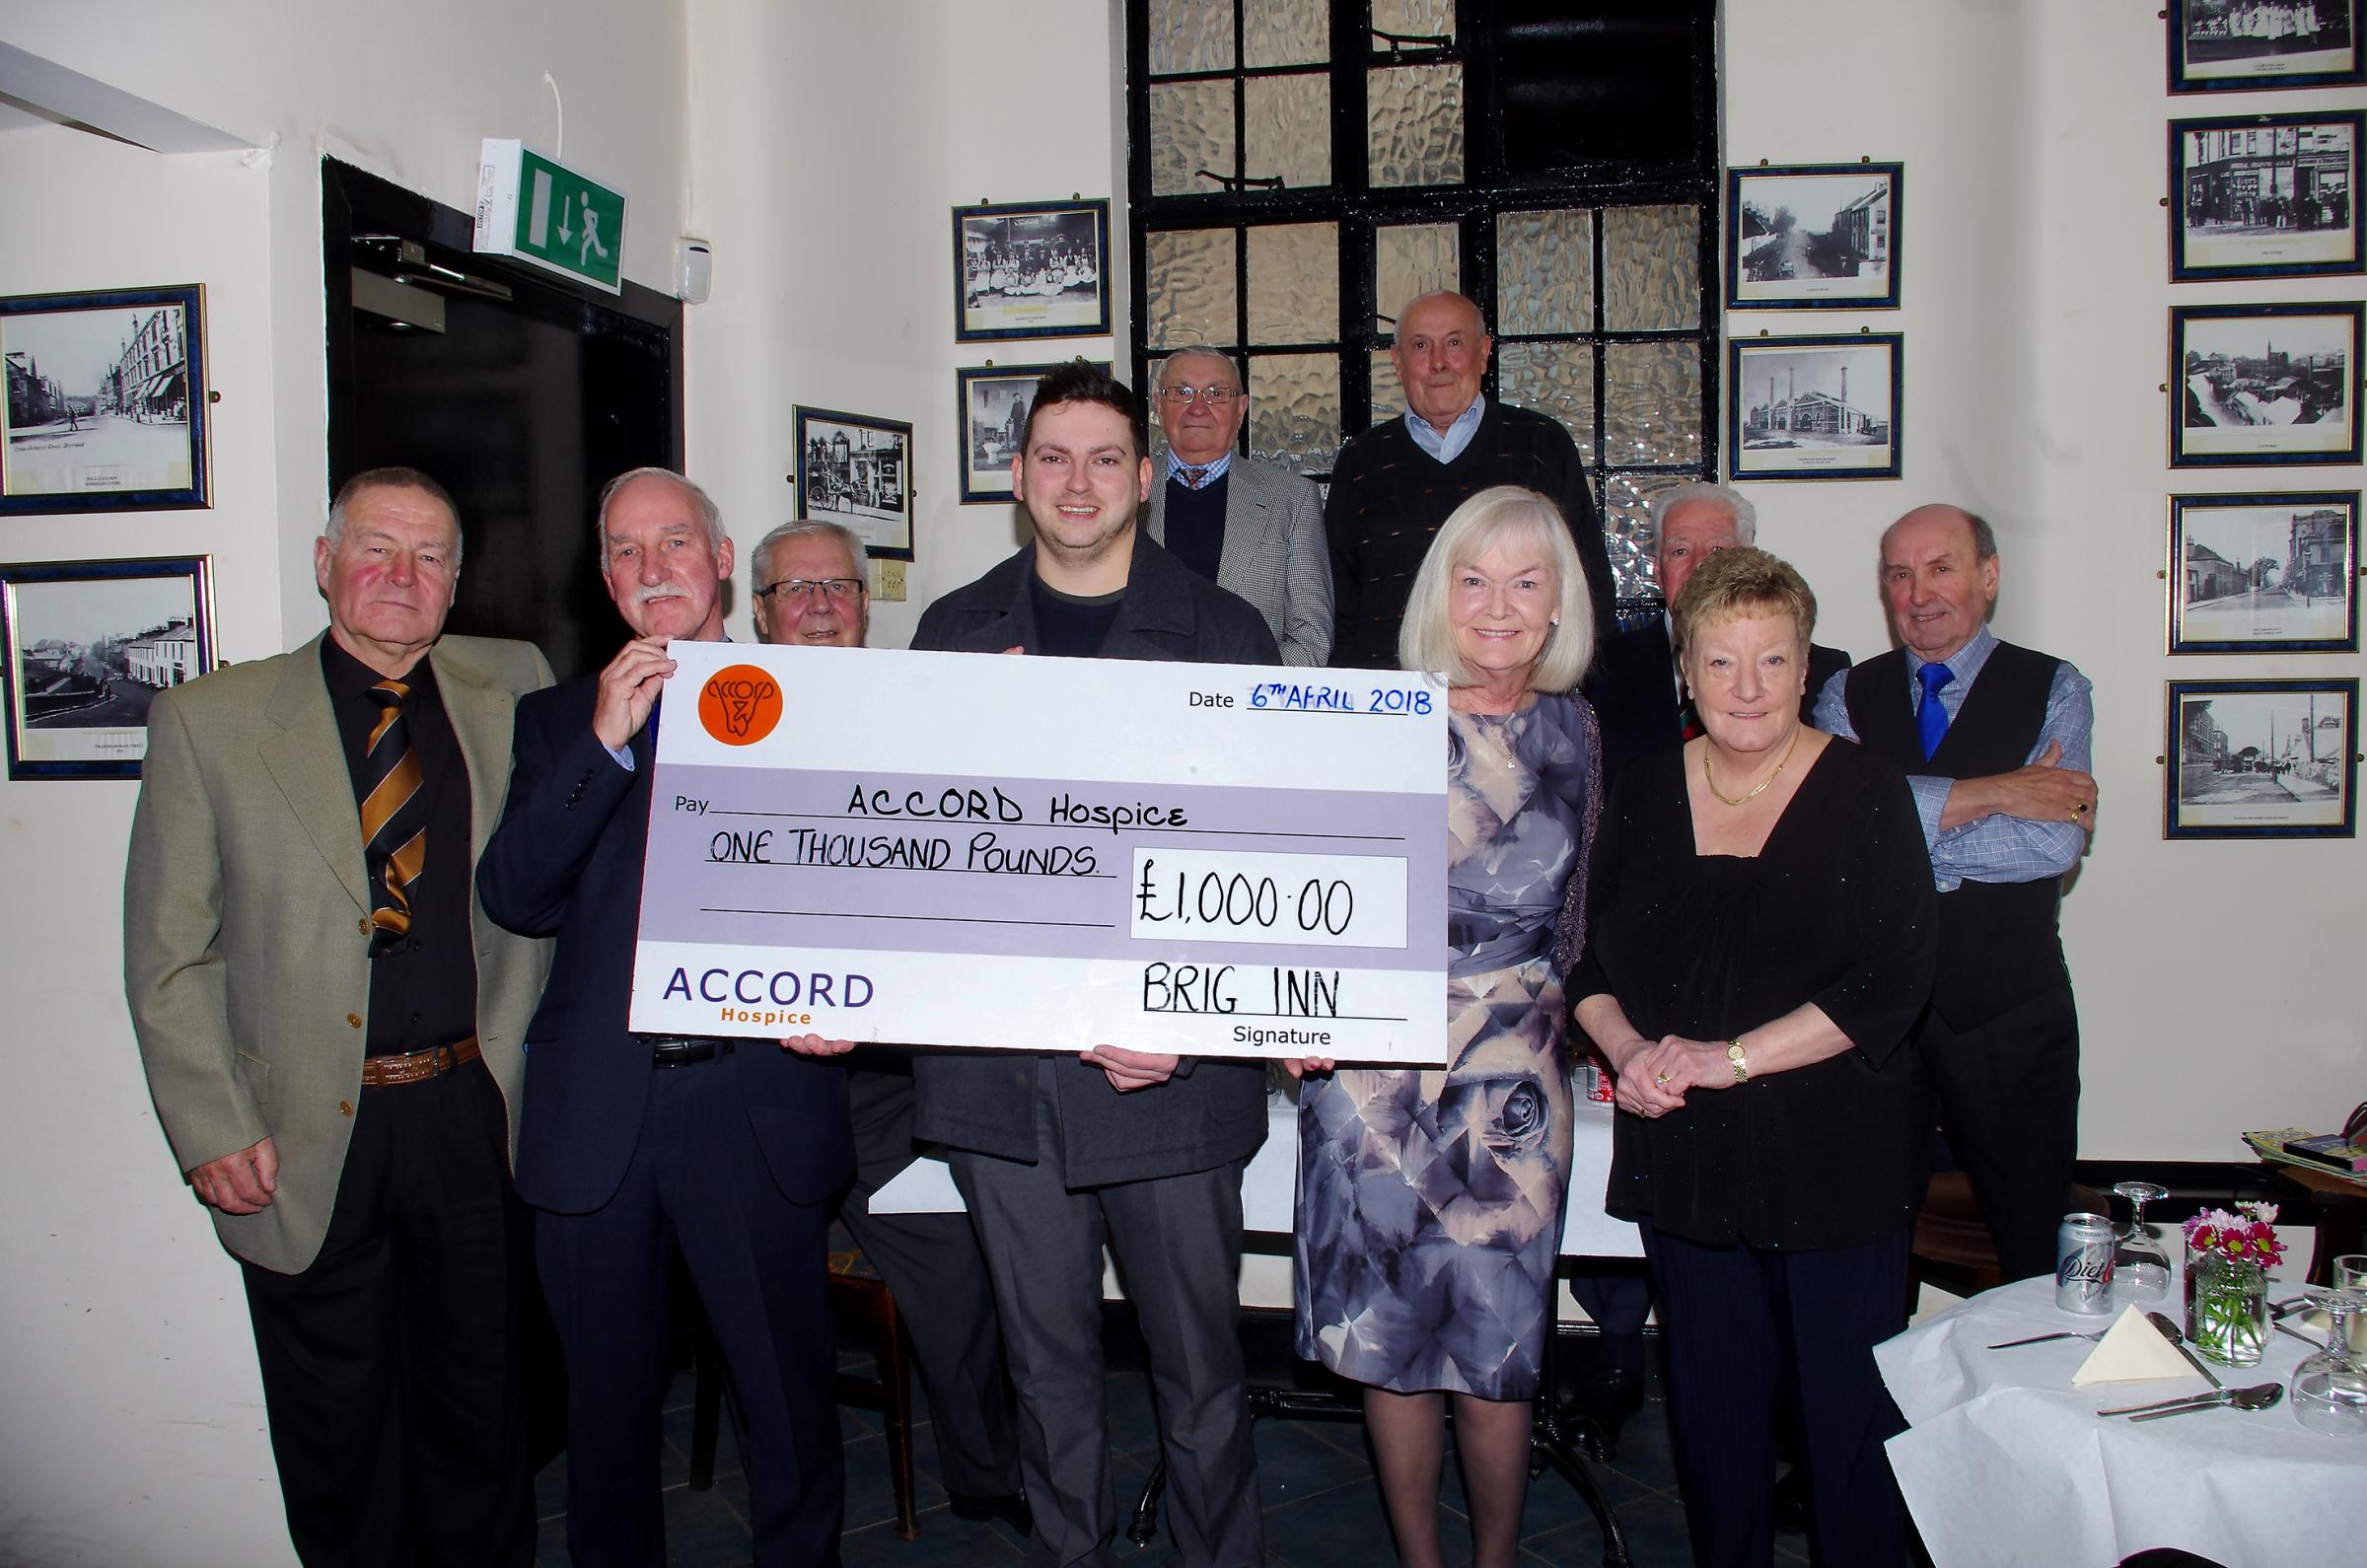 The Brig Inn handed over the cheque to the Accord Hospice on Friday